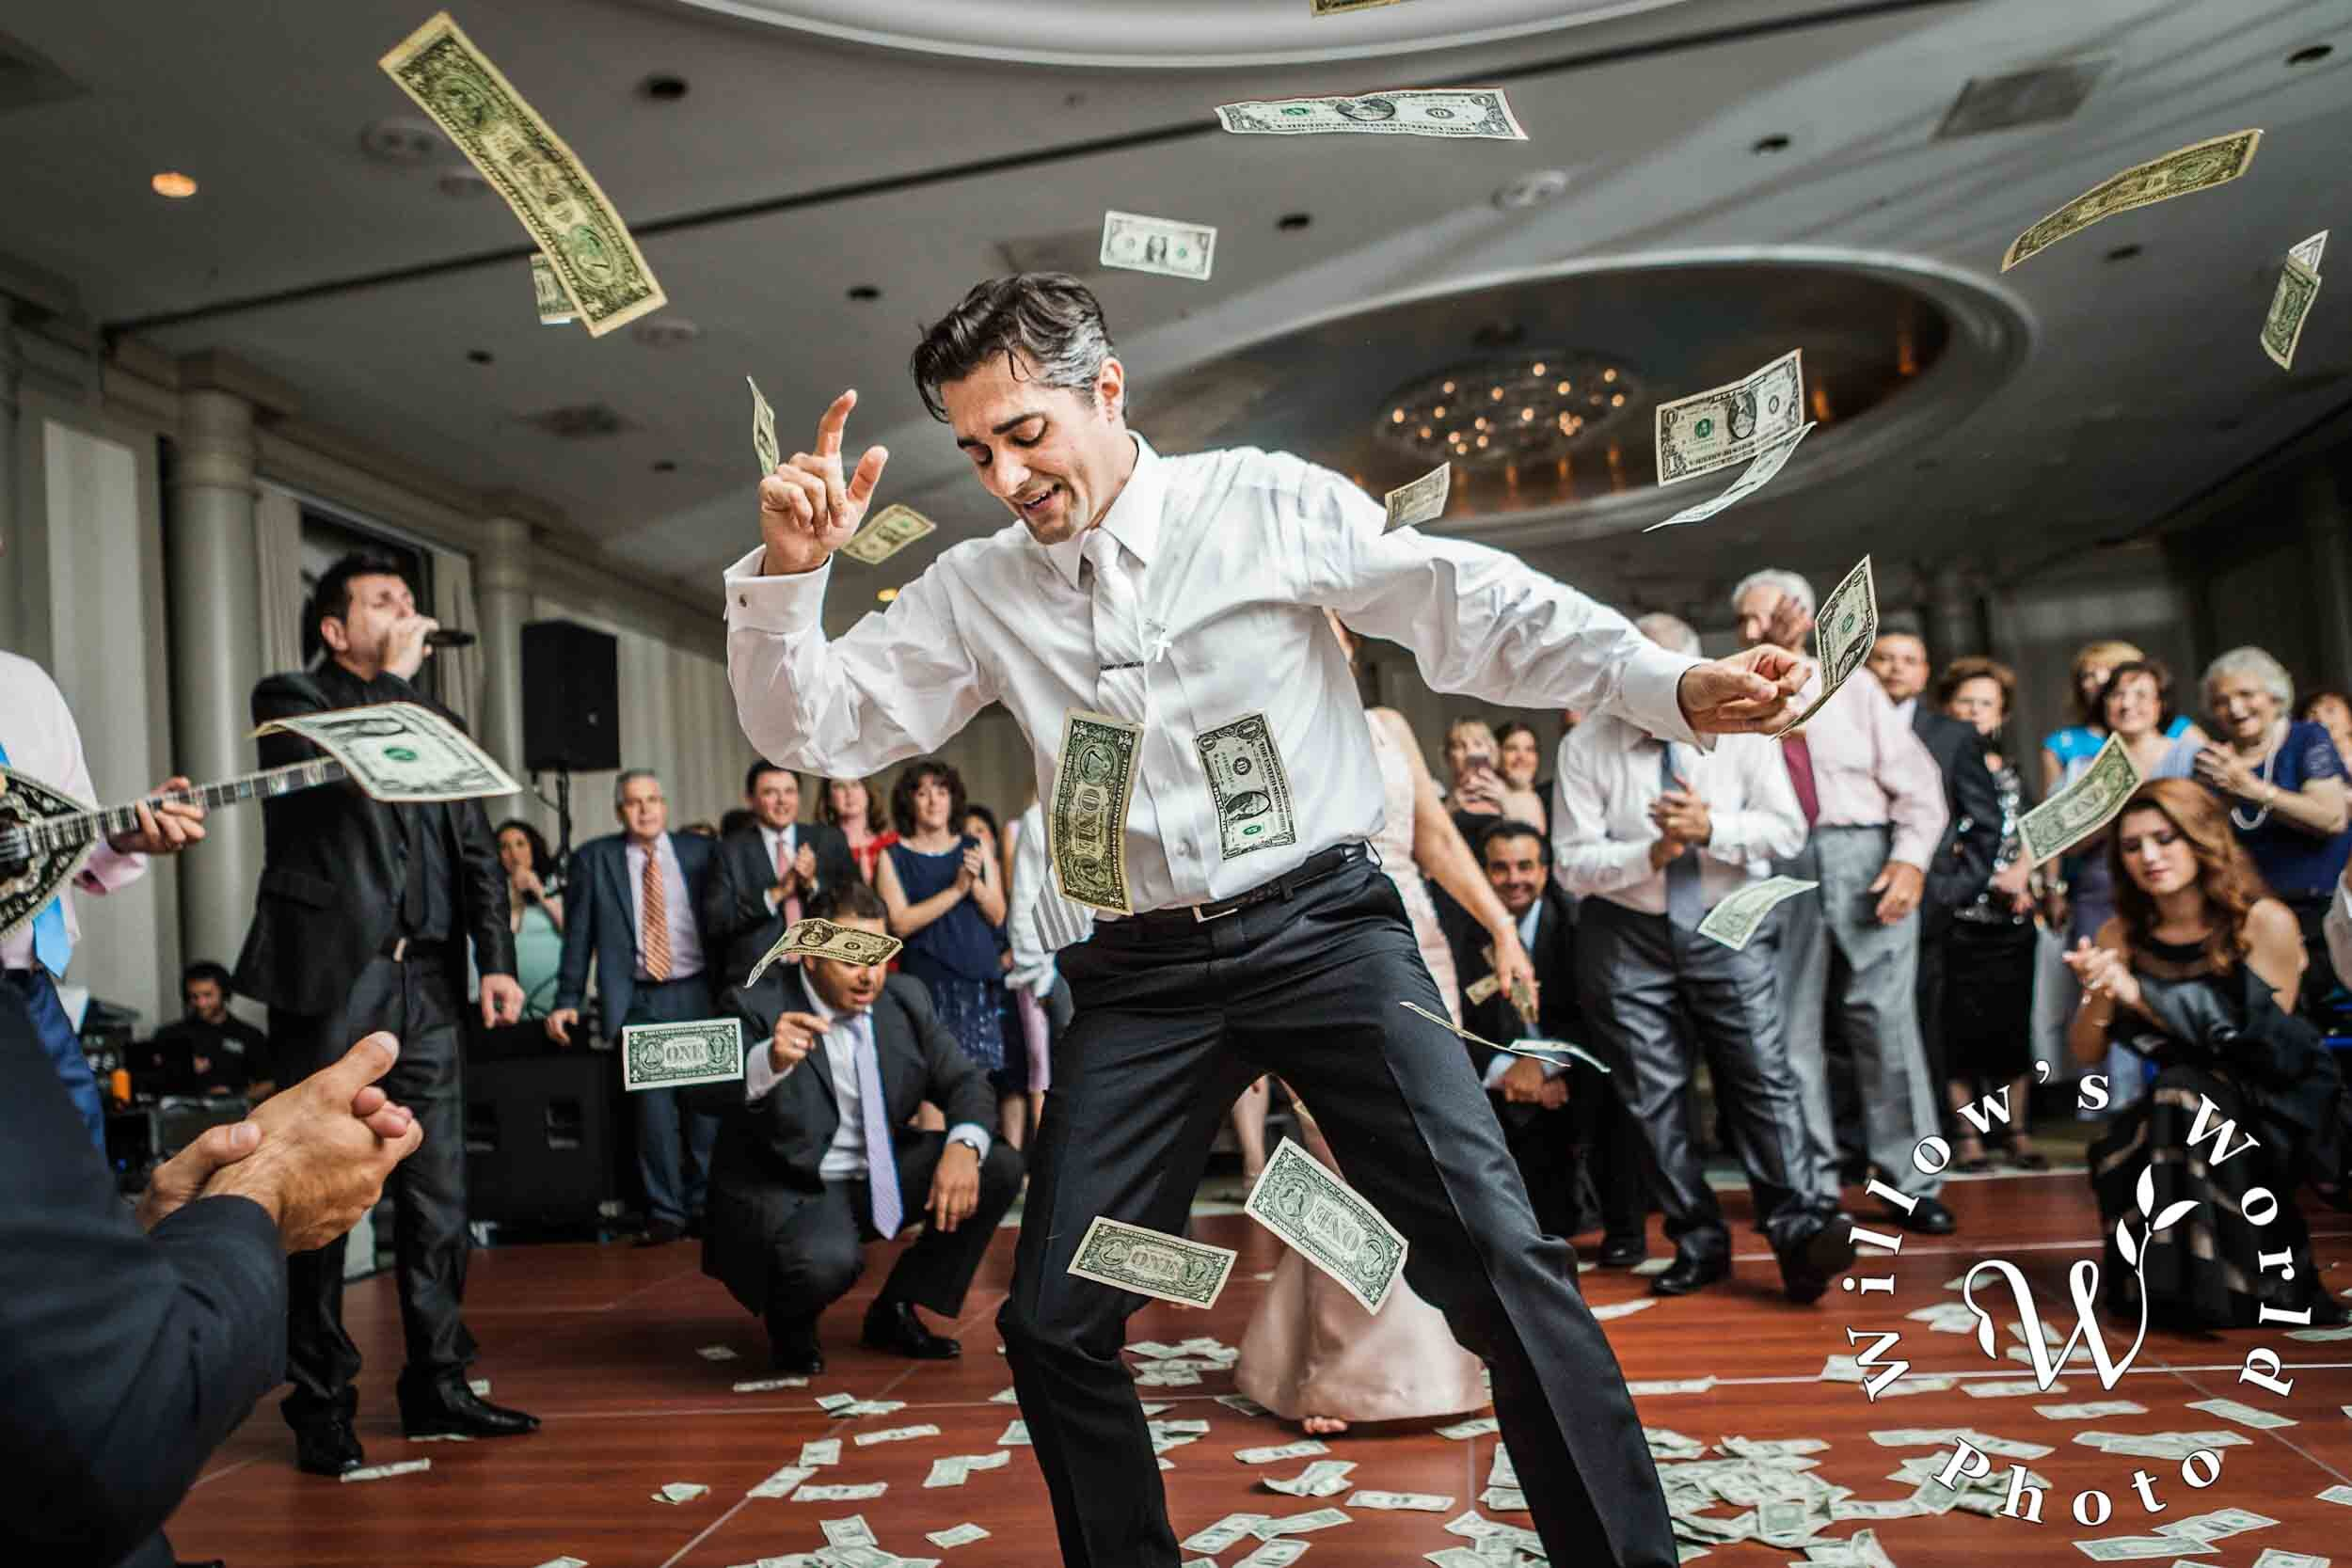 20-Westin-at-Canal-Place-New-Orleans-Greek-Wedding-Reception-Photo-Willows-World-Photo.jpg